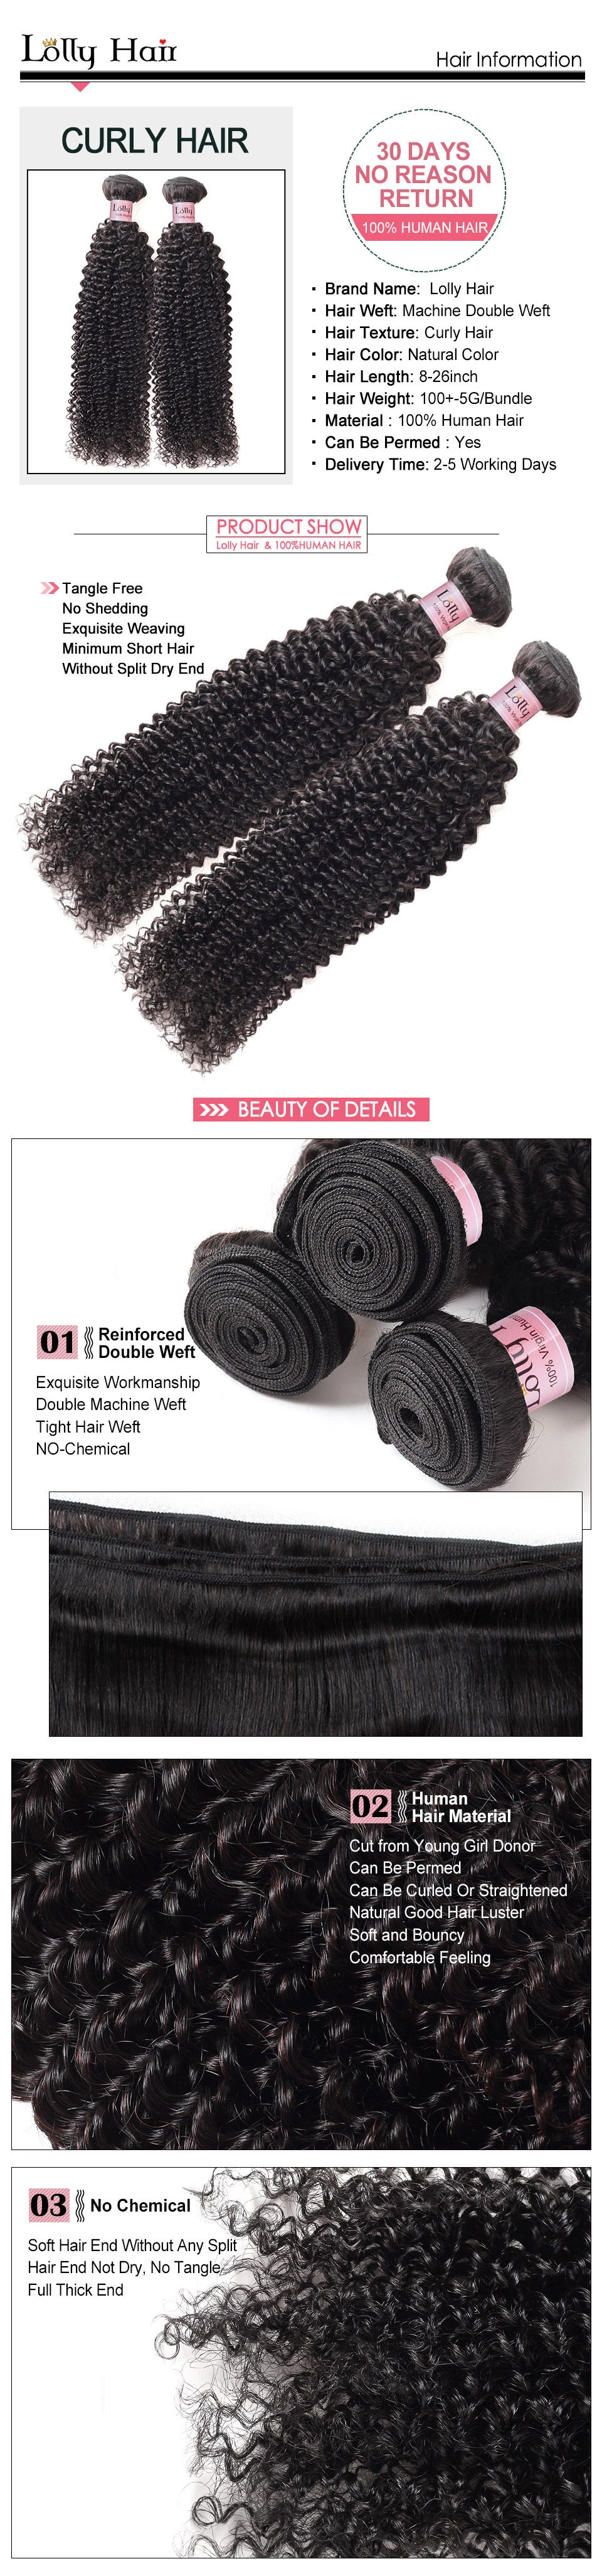 Lolly Brazilian Curly Virgin Human Hair 2 Bundles, 9A Grade, 100% Human Hair